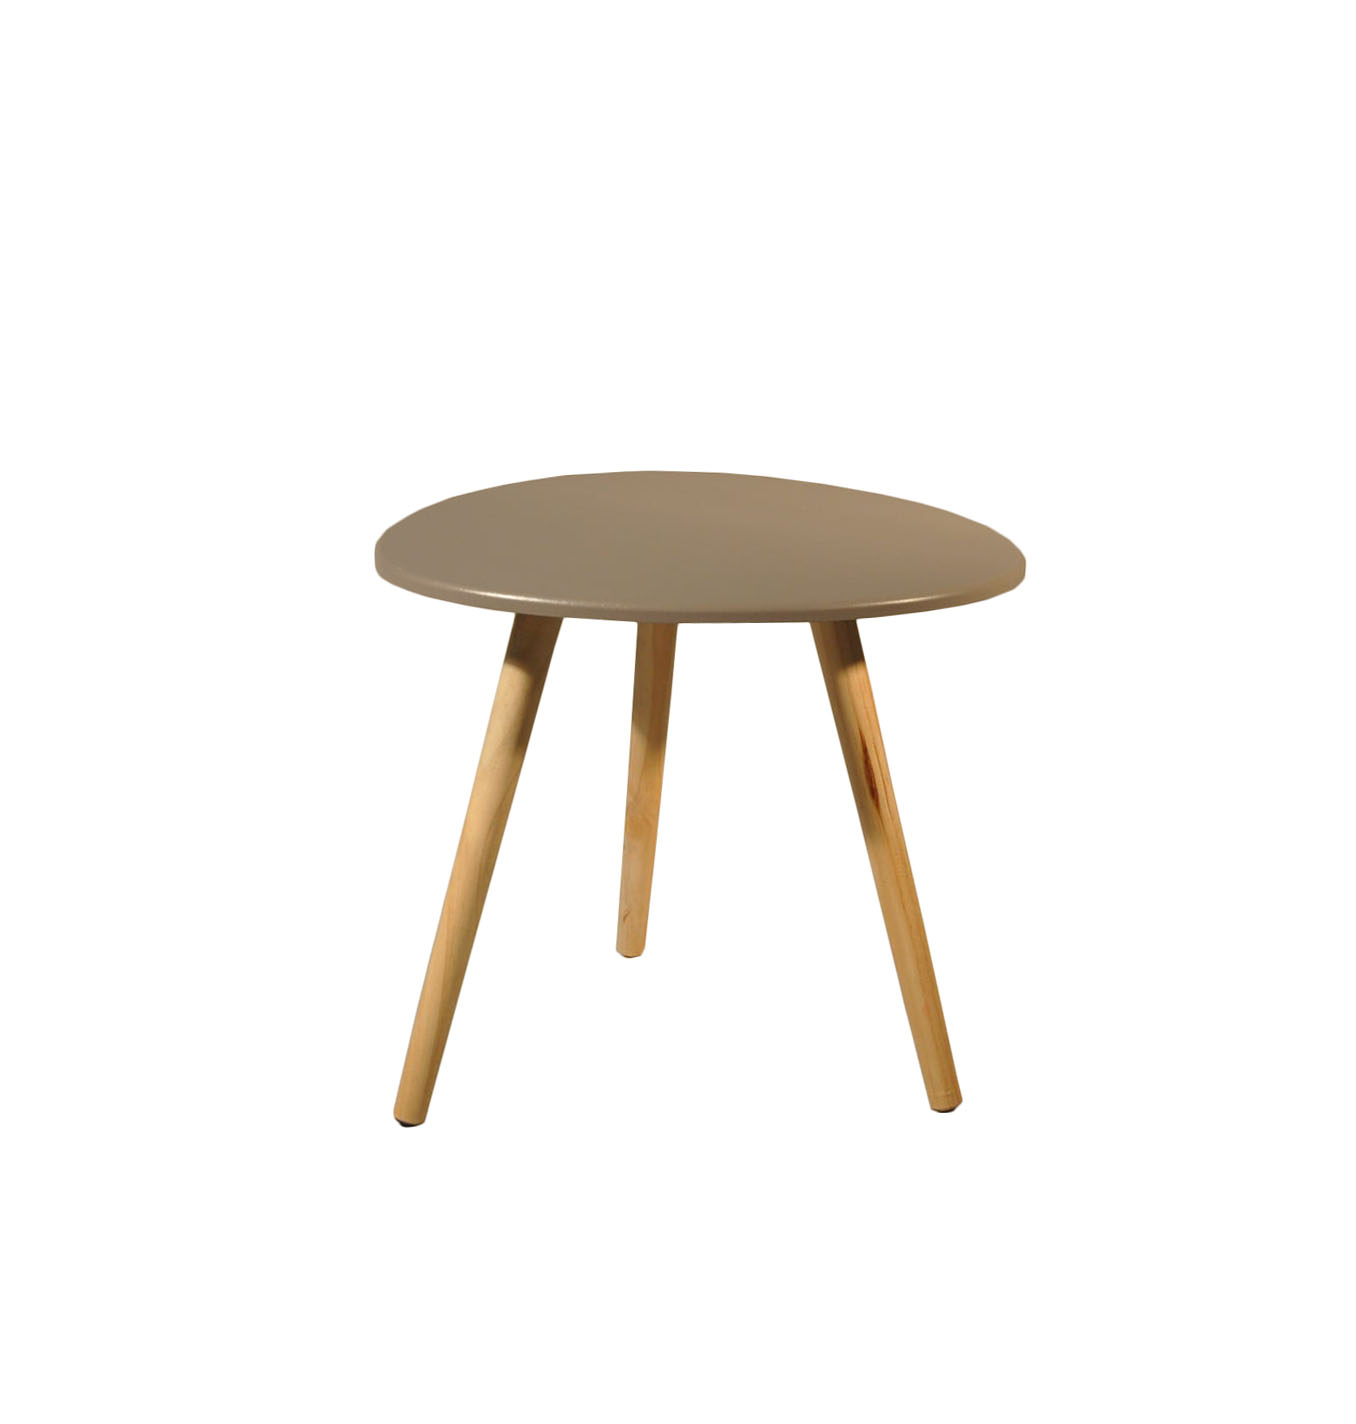 Table basse scandinave taupe Meuble scandinave table basse